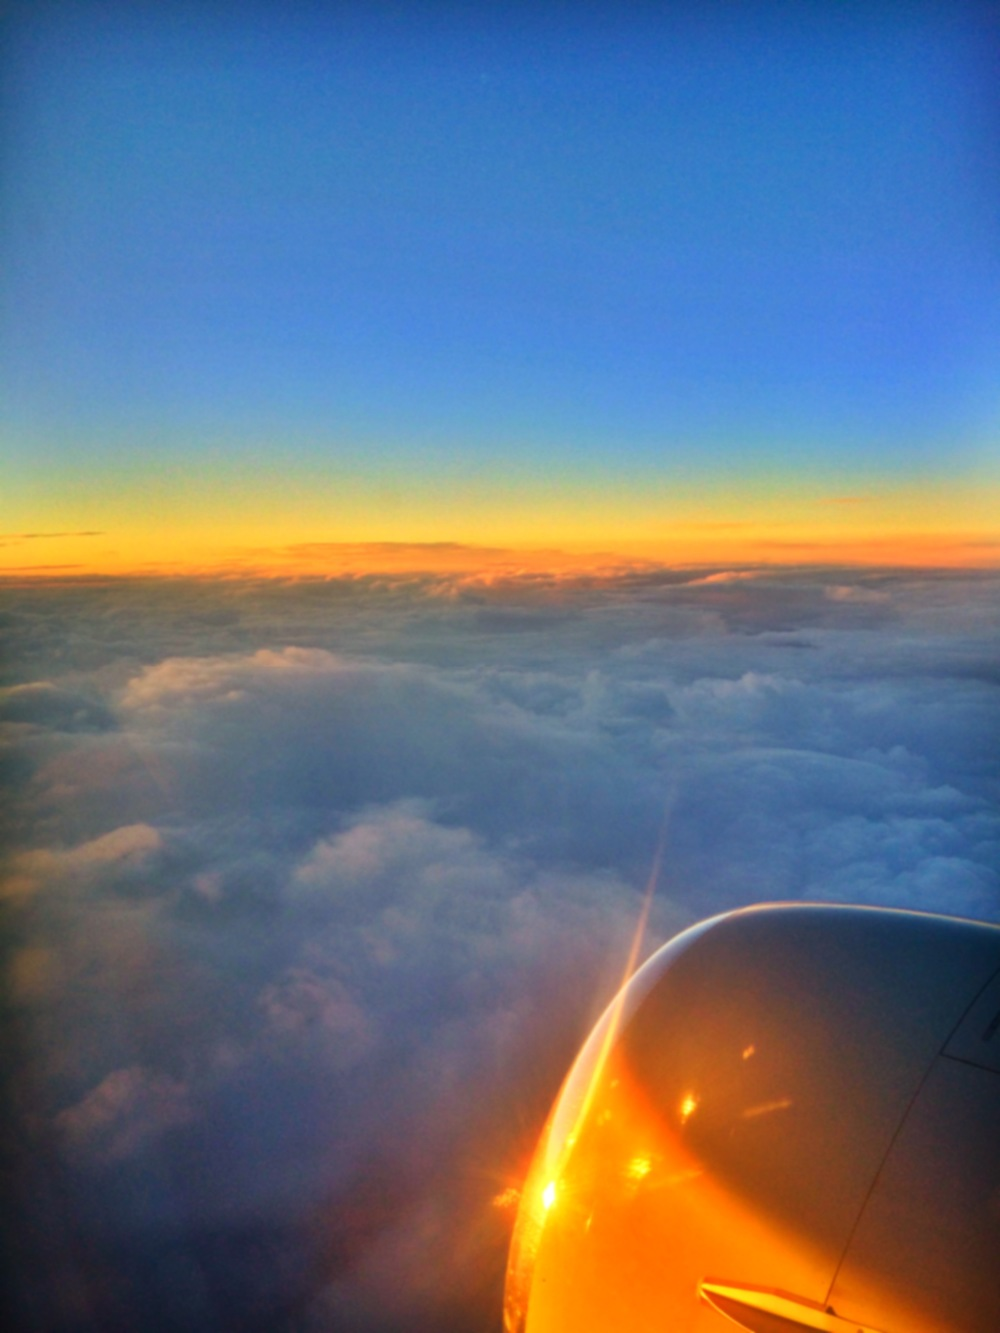 Sunrise at 35,000 feet.